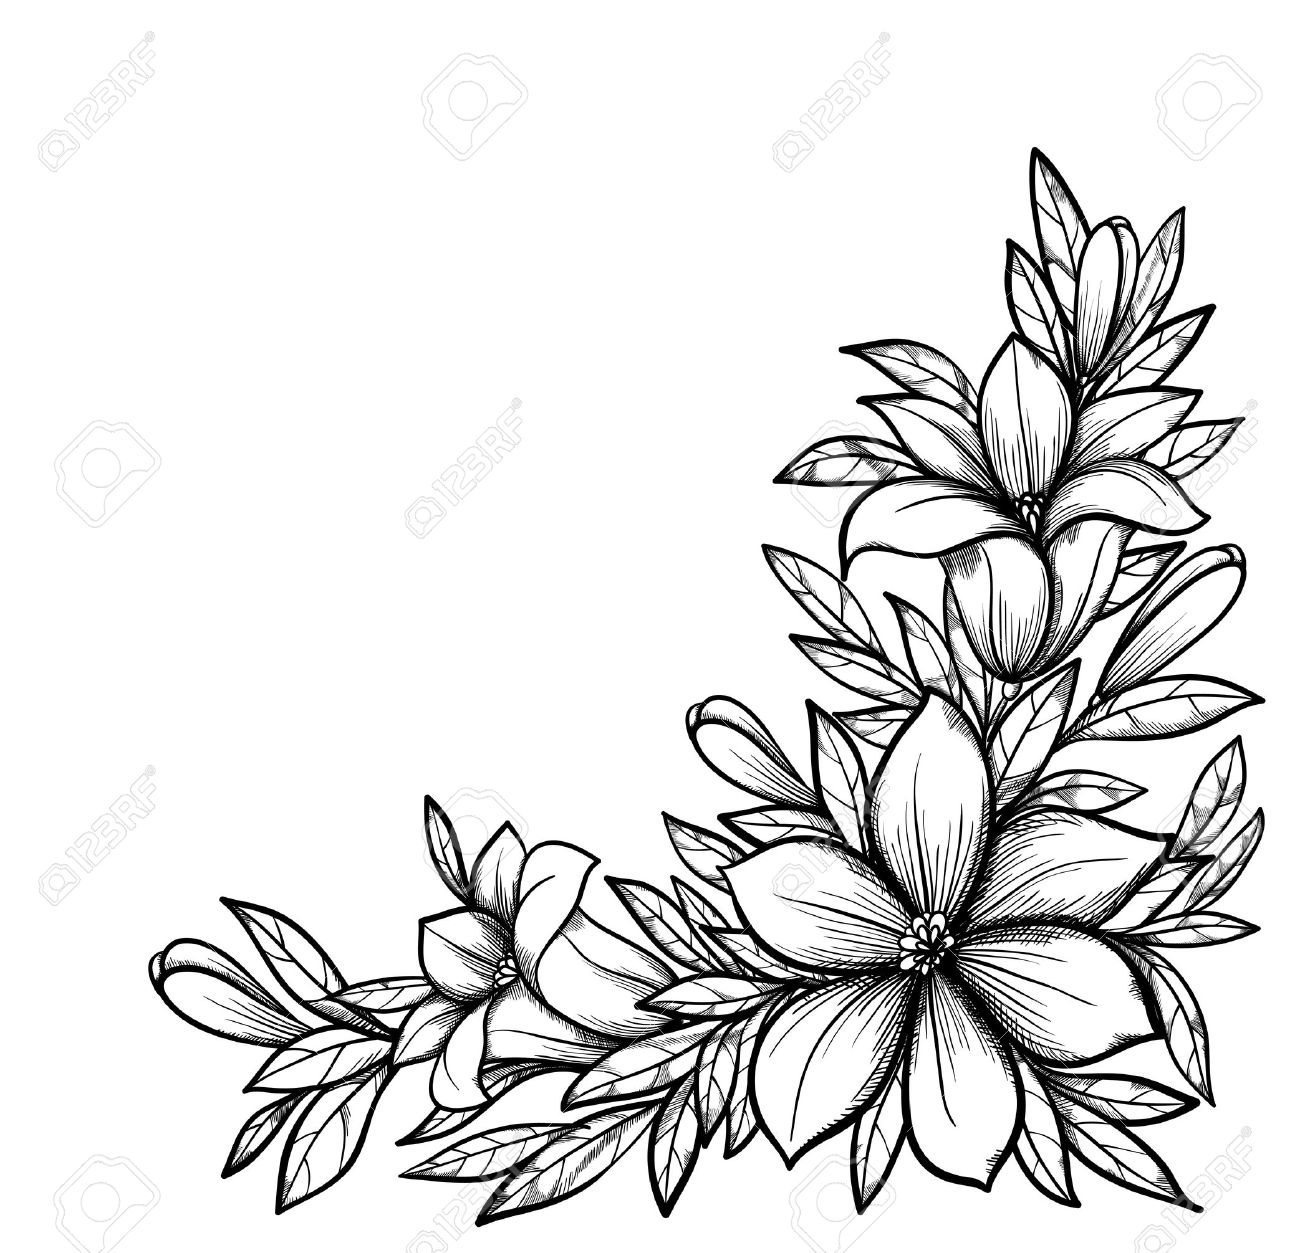 Black and white flower drawing at getdrawings free for 1300x1253 beautiful black and white branch with flowers drawn in graphical mightylinksfo